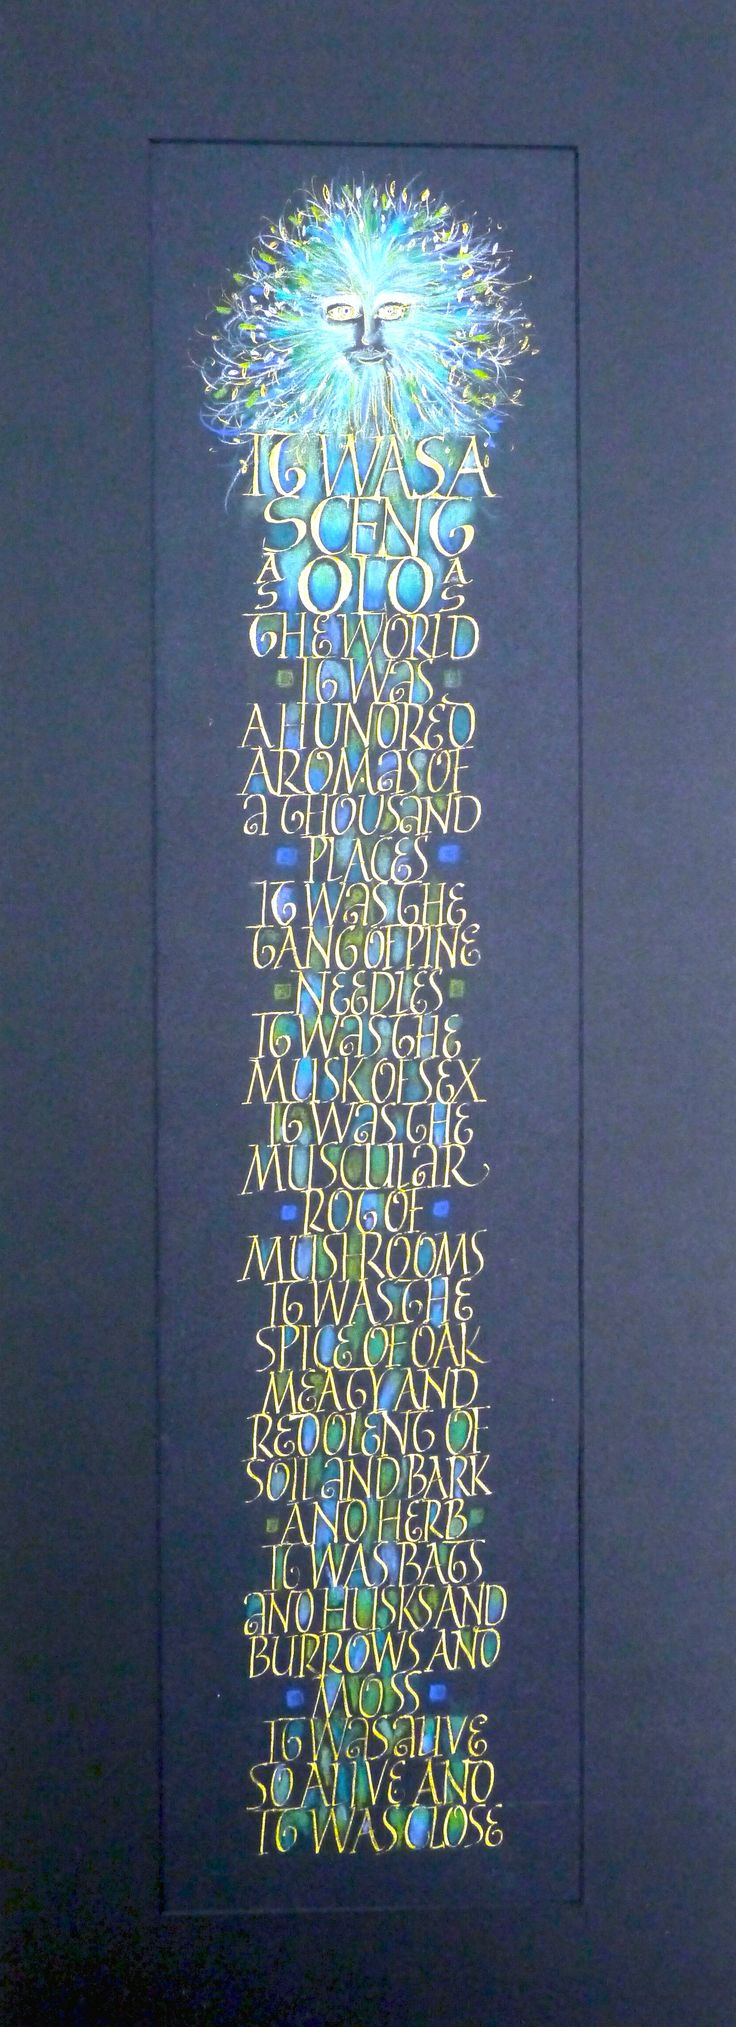 """The green man"" - Calligraphy by Ruth Sutherland - Text: Stephen M. Irwin, 'The Dead Path'"